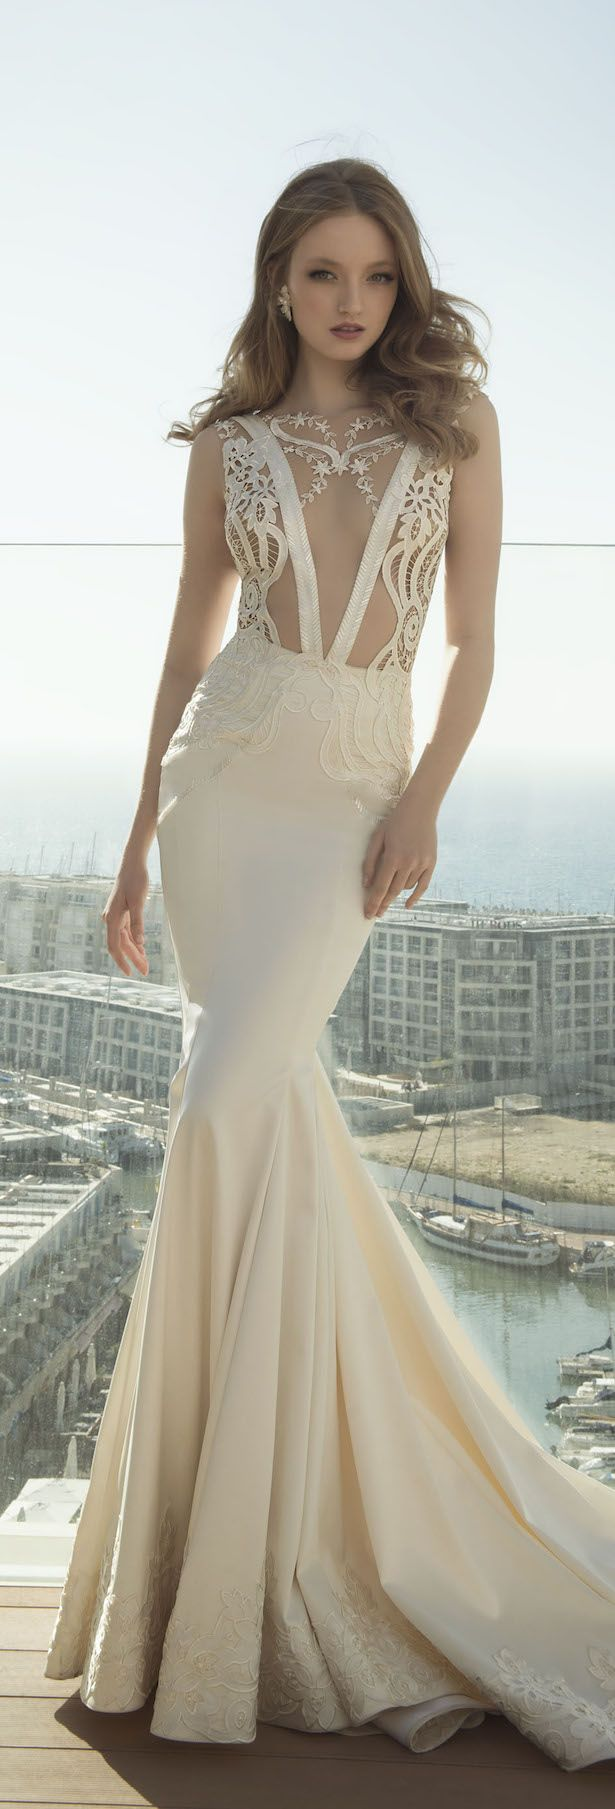 dress for a wedding 768 best 2016 wedding dresses images on 3684